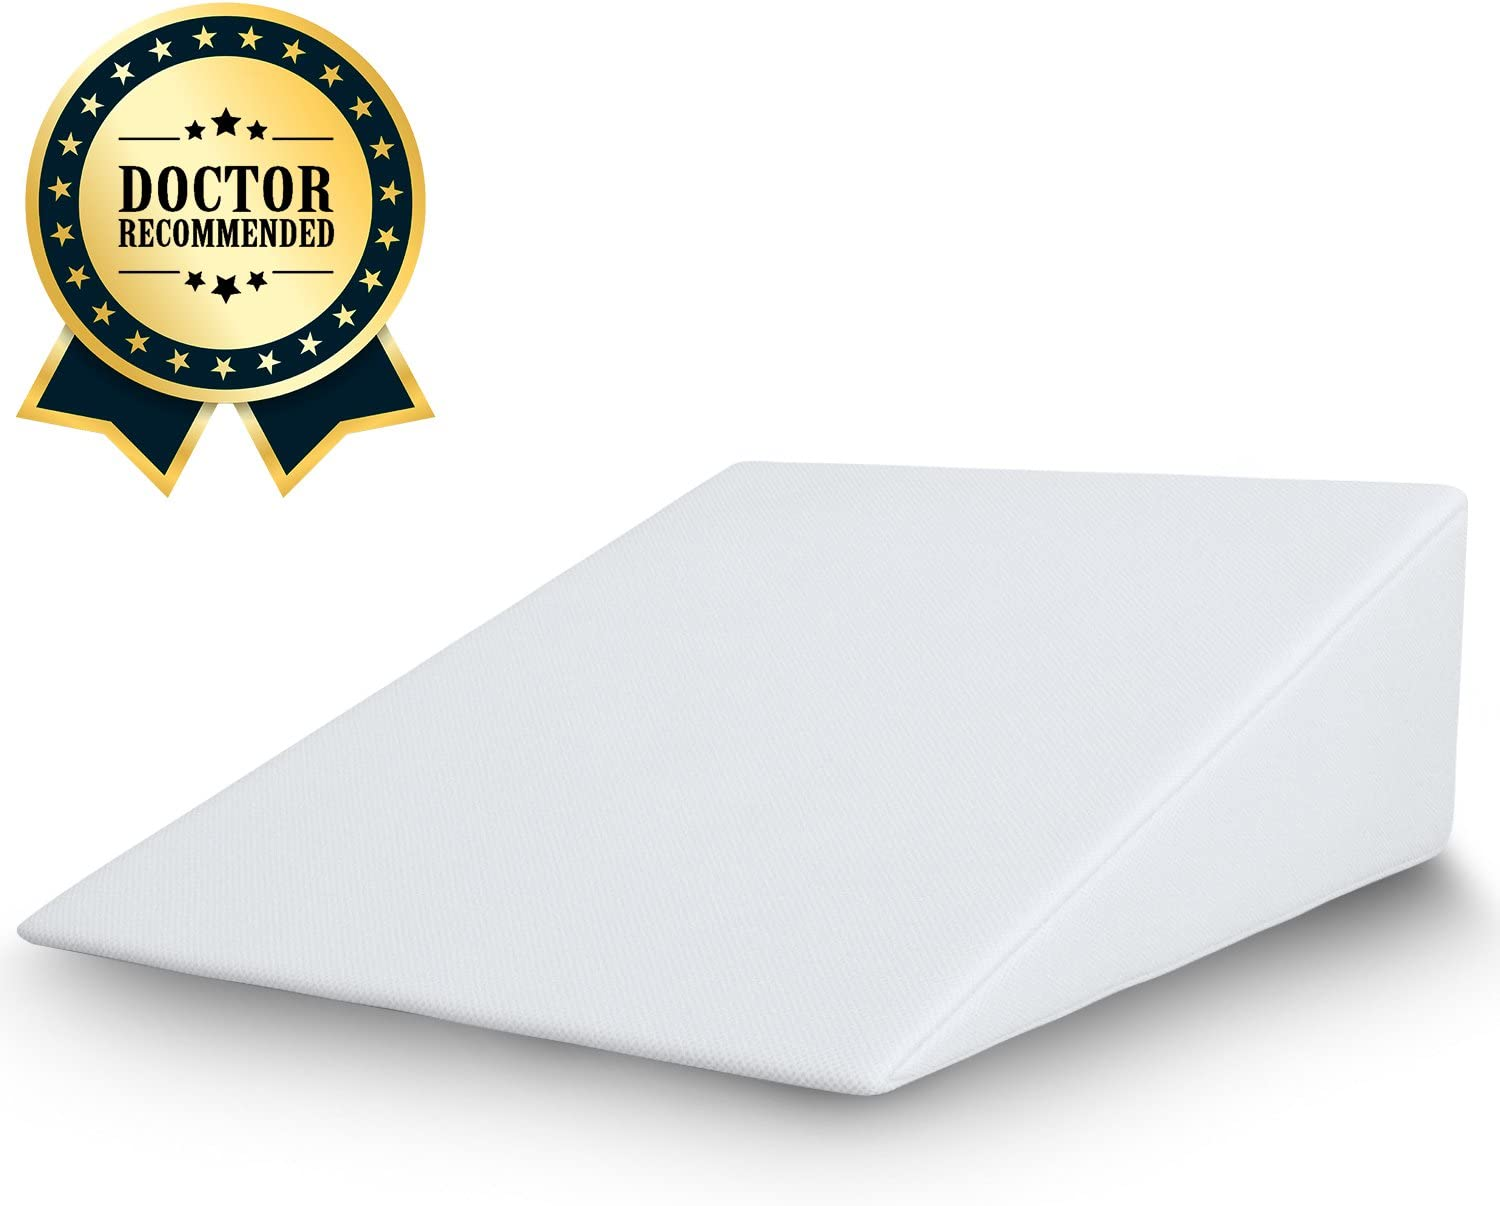 FitPlus Bed Wedge, Premium Wedge Pillow 2 Inches Memory Foam 2 Year Warranty, Acid Reflux Pillow with Removable Cover Dr Recommended for Snoring and Gerds: Home & Kitchen